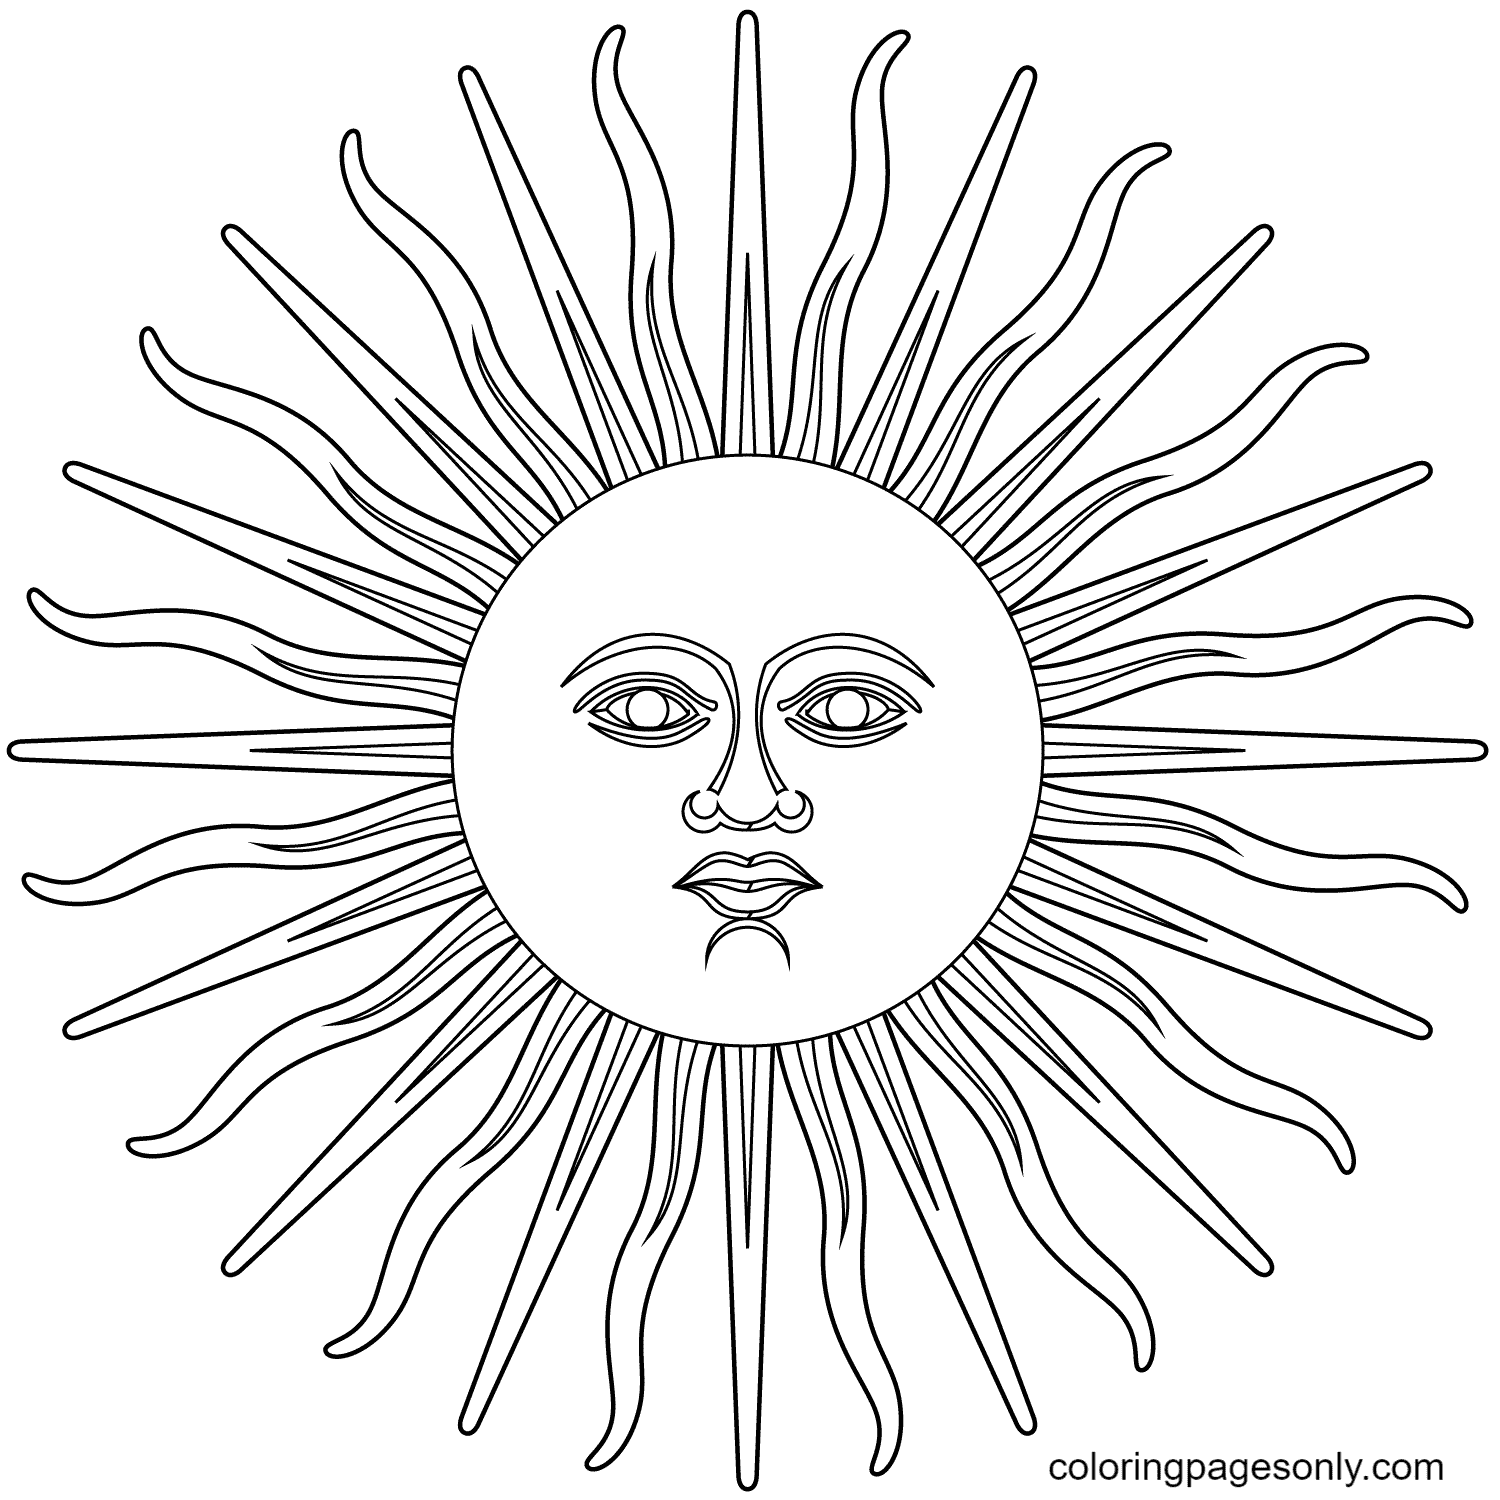 Inti or Sun of May Coloring Page